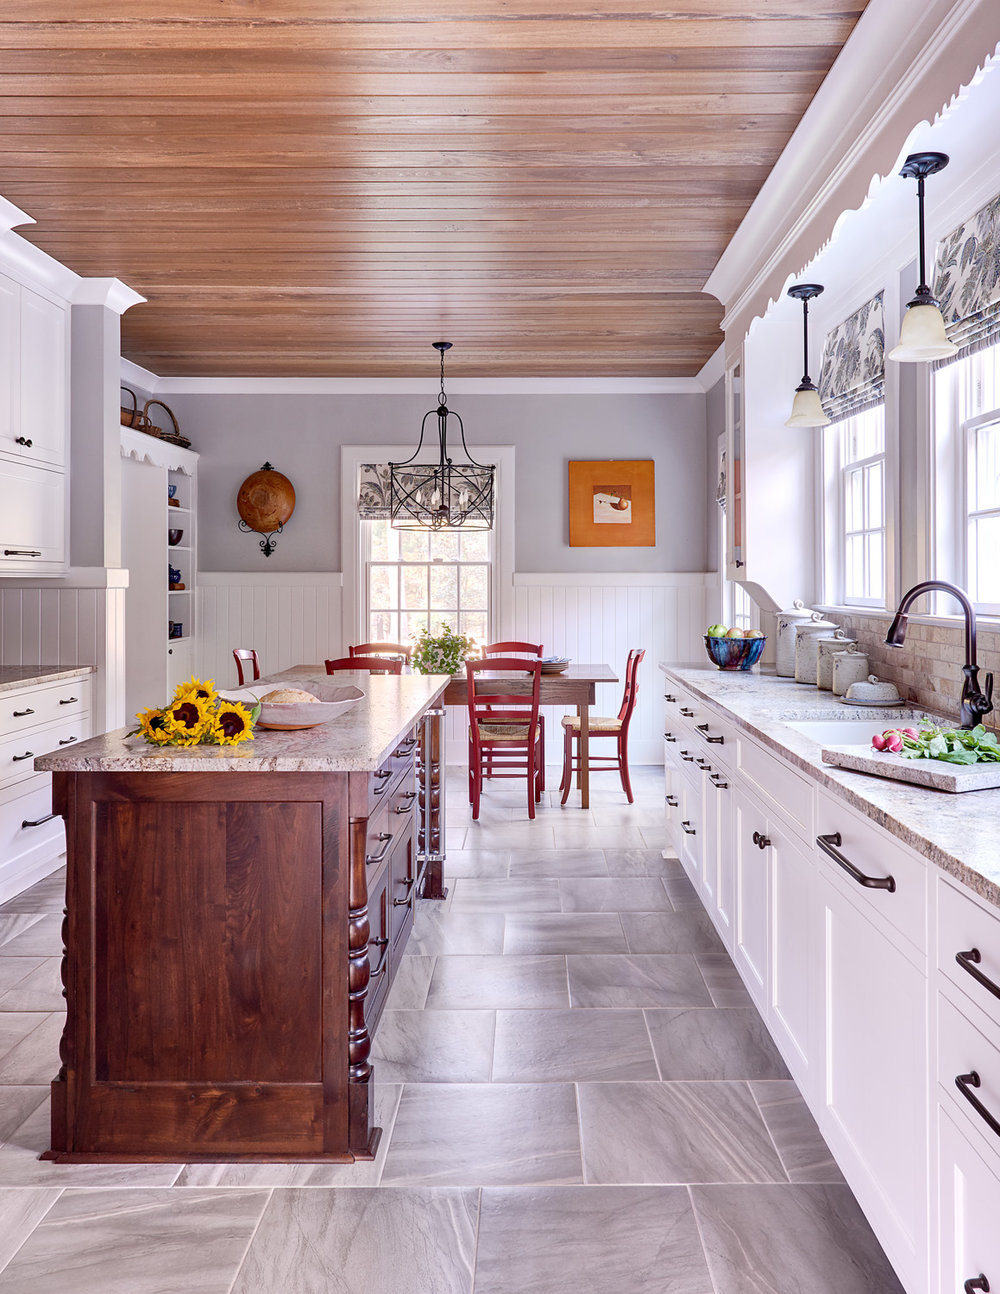 interior-design-kitchen-north-carolina-3.jpg